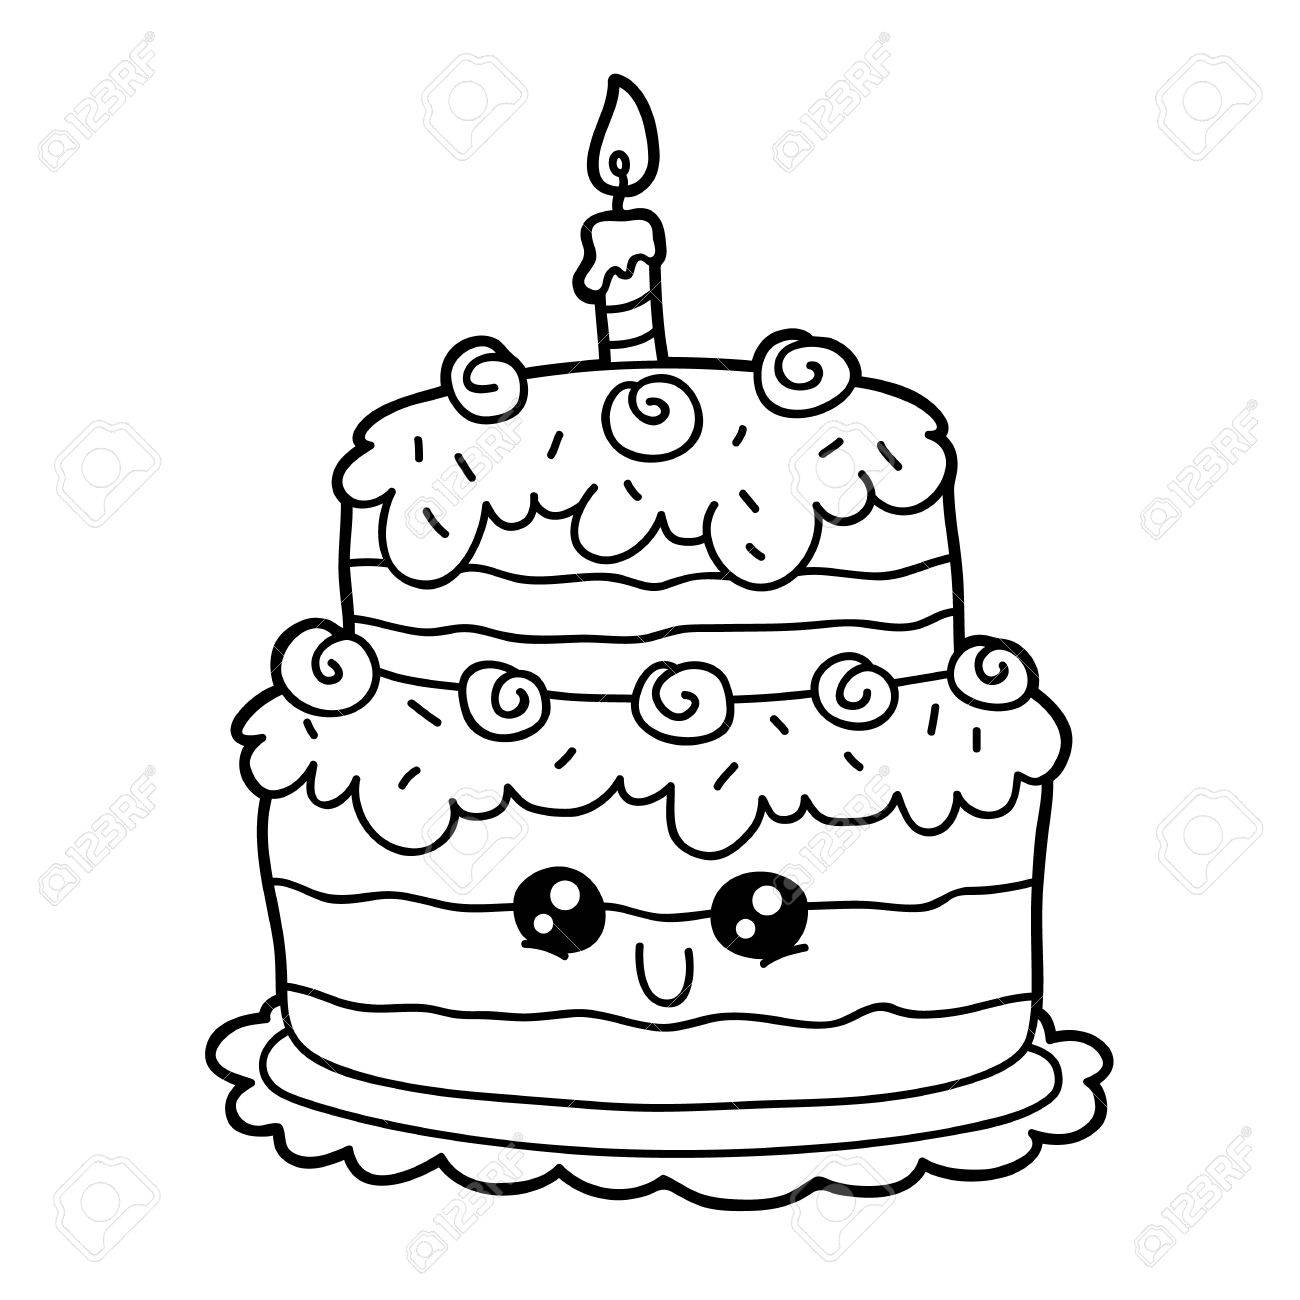 Vector Illustration Of Cute Cartoon Birthday Cake Character For